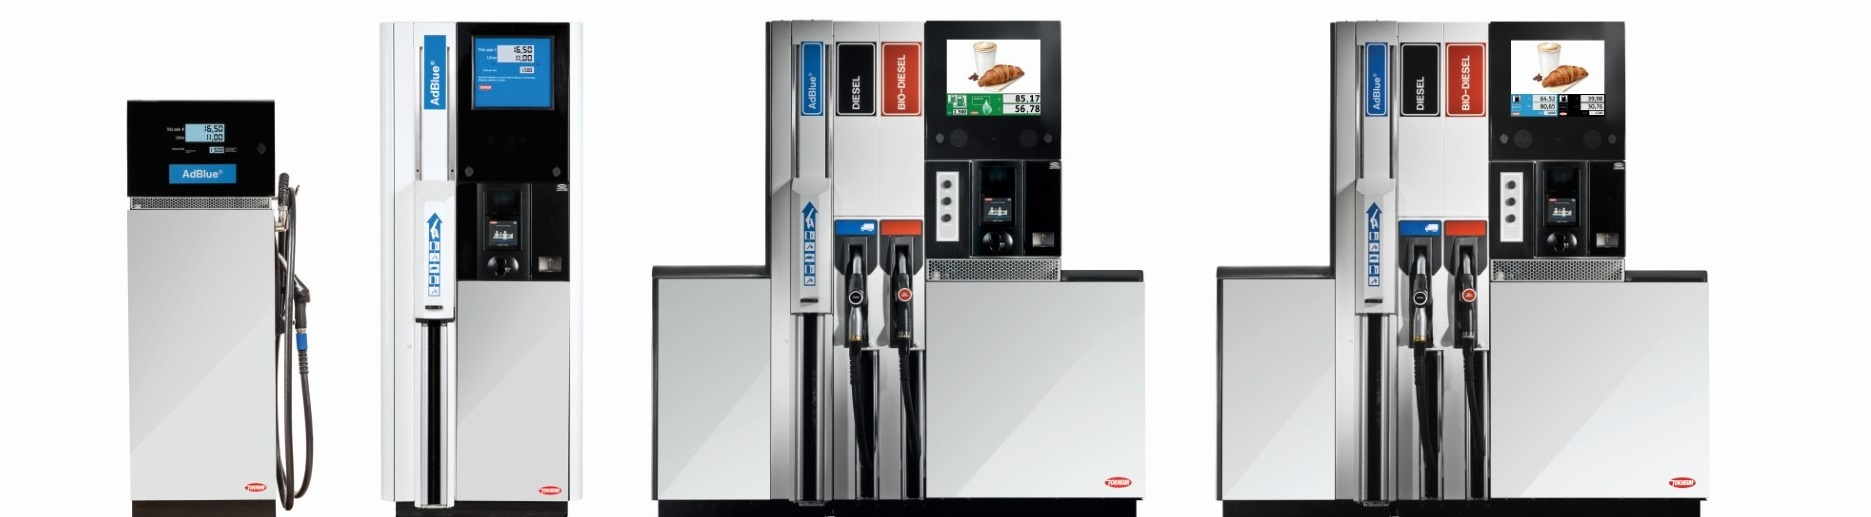 Tokheim Quantium™ AdBlue® fuel dispensers and solutions - cleared-2